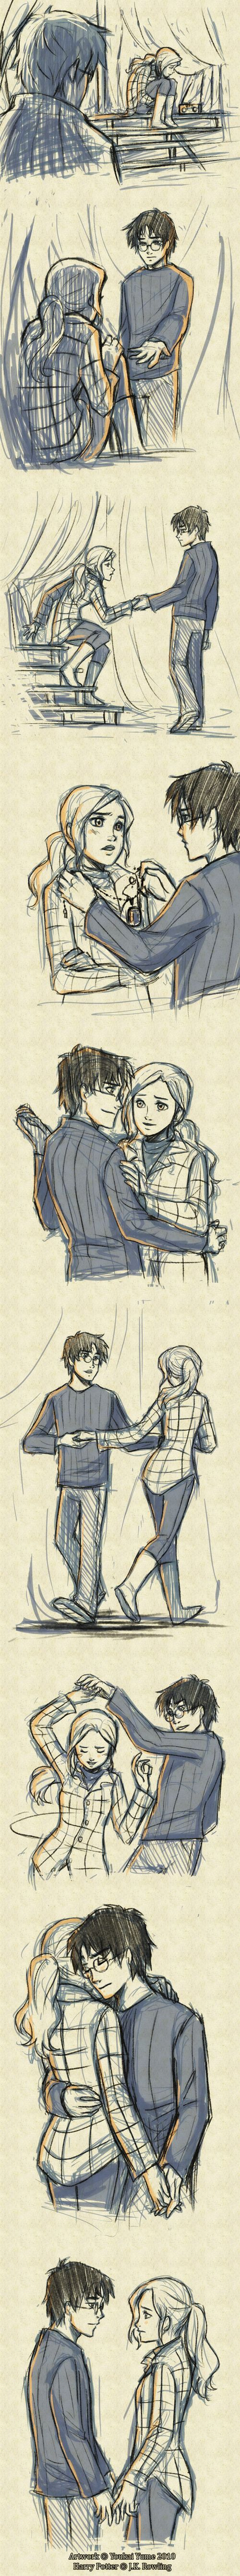 I think this is a really sweet scene between Harry and Hermione. They have such a great brother/sister-like relationship.